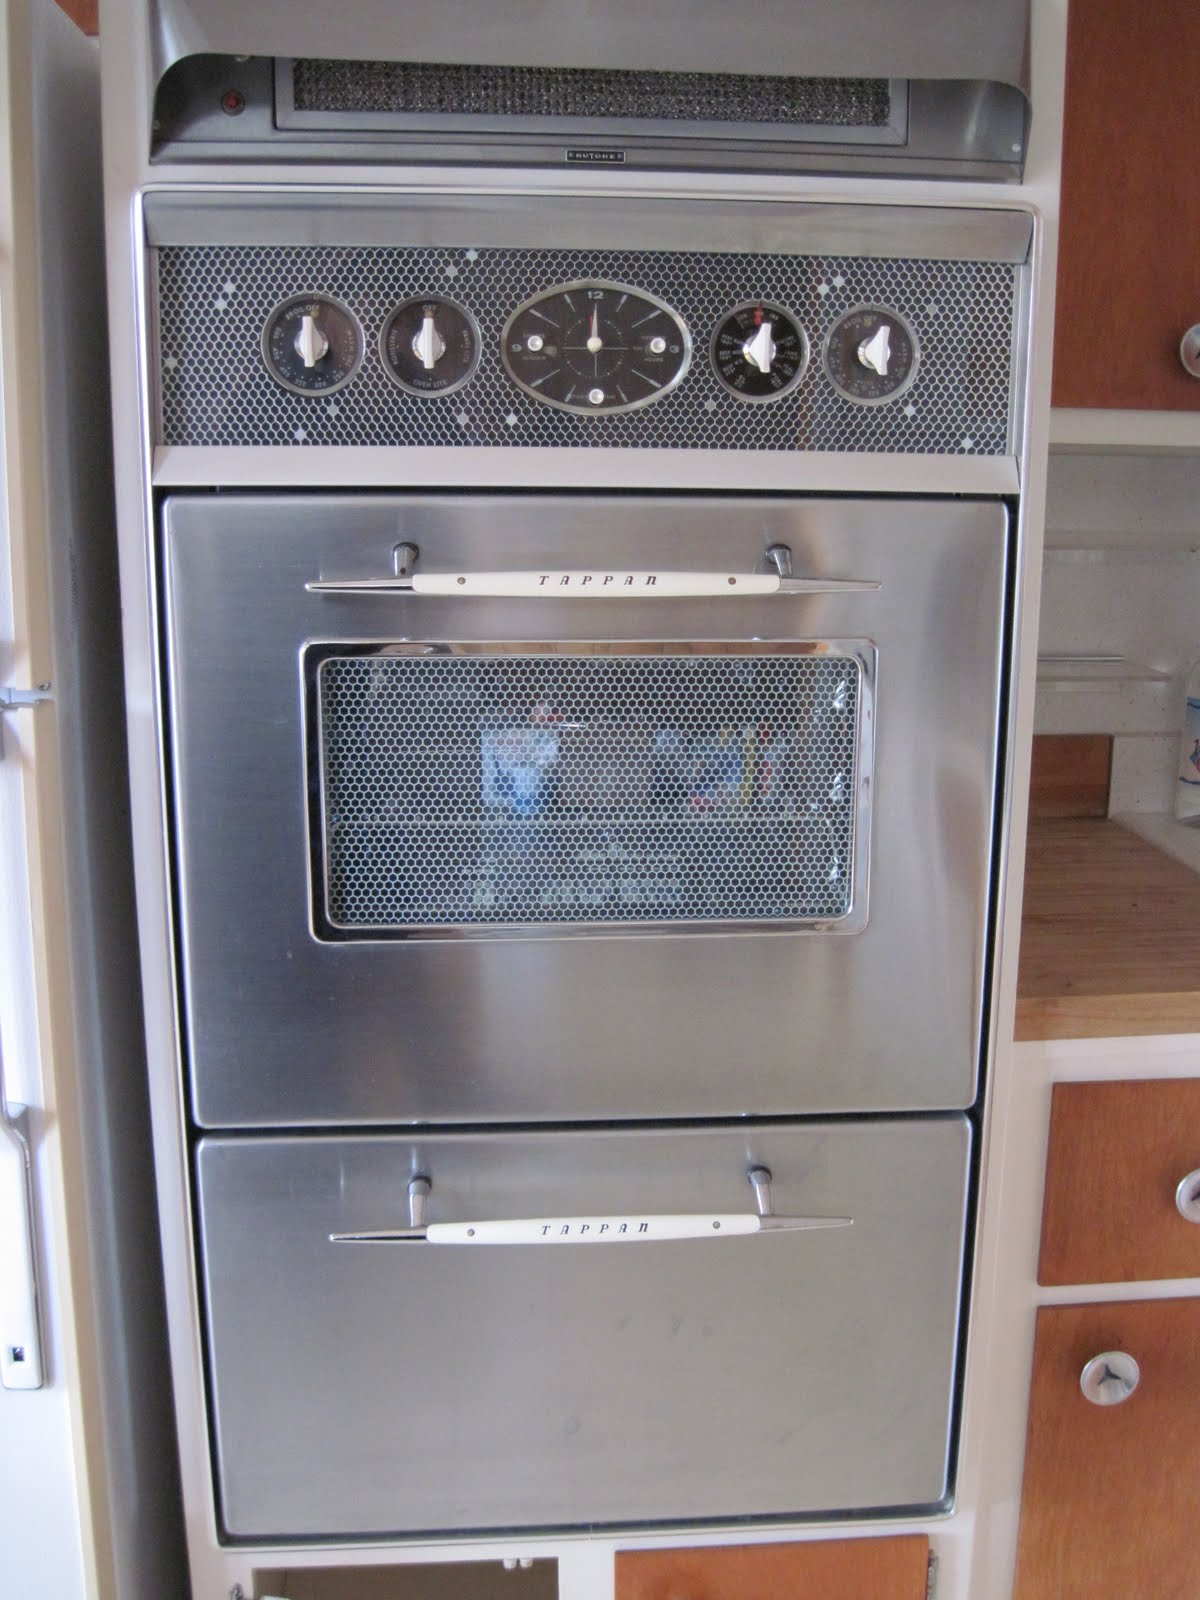 tappan gas oven wiring diagram for wall double ovens tappan double oven  double ovens tappan double oven